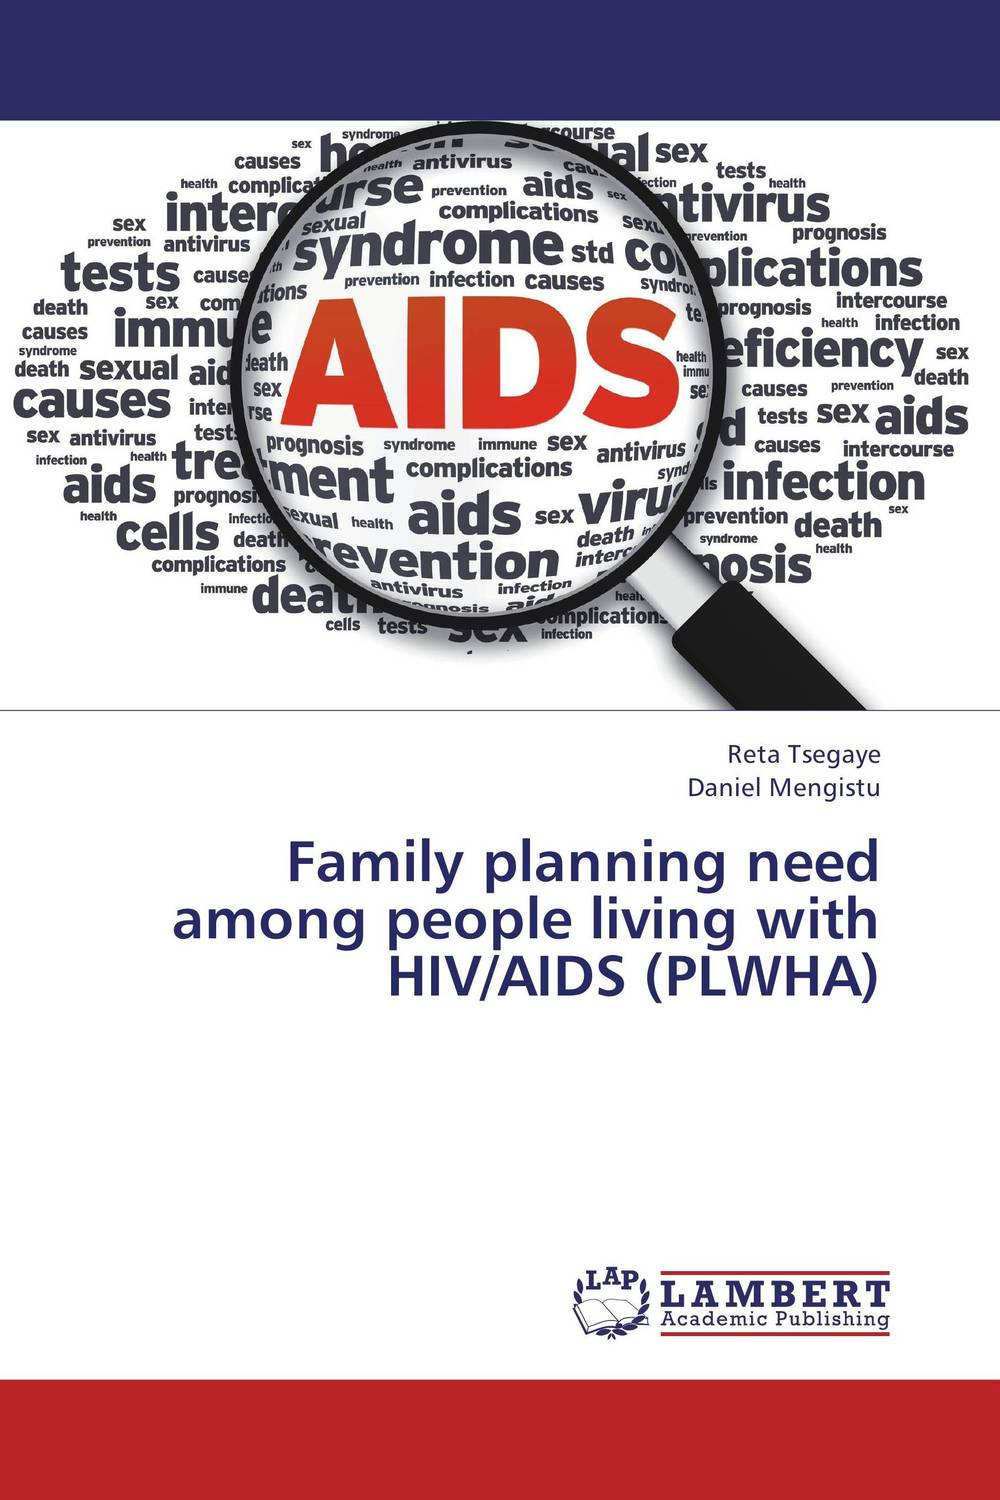 Family planning need among people living with HIV/AIDS (PLWHA) assessing family planning decision